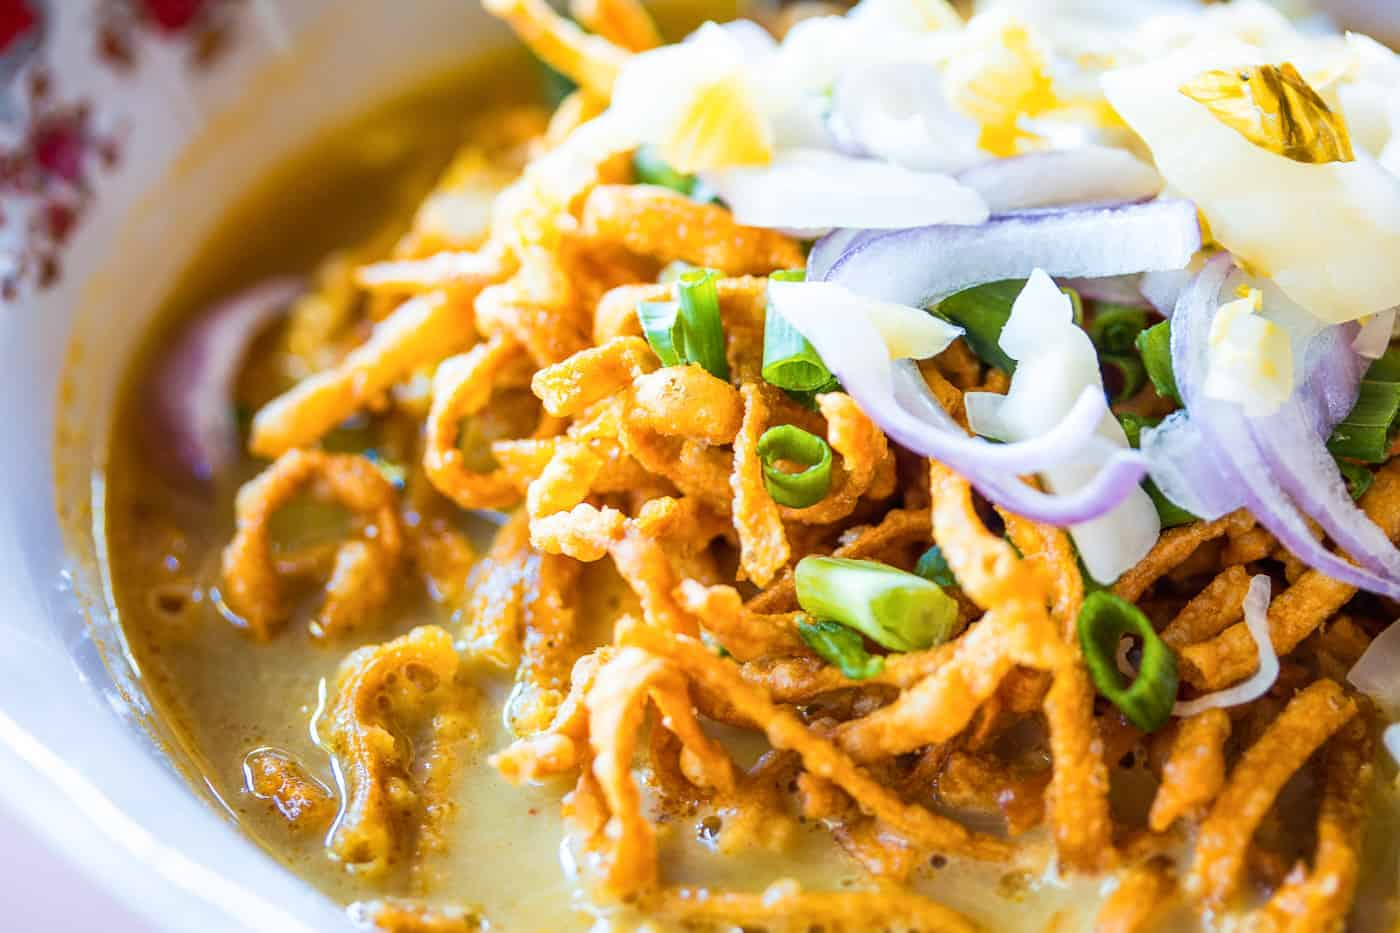 Chiang mai itinerary travel guide Khao soi